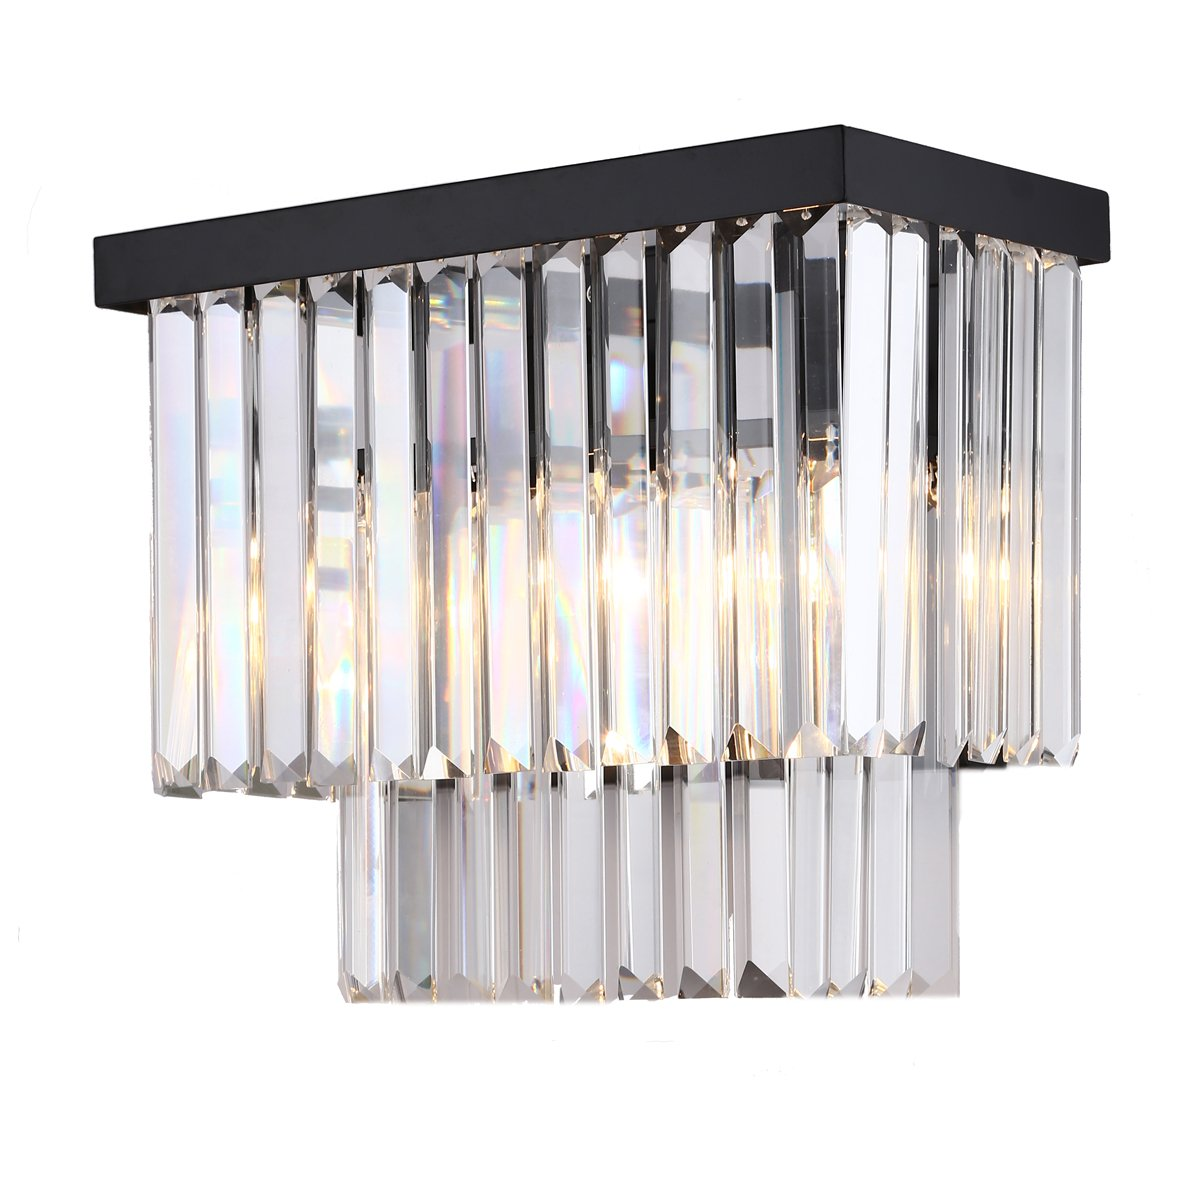 Crystal Prism Wall Sconce Lamp 2 Lights Ceiling Light Creative Modern Simple Wall Lamp Hotel Retro Bedside Living Room Bedroom Wall Light Black Metal + Clear Crystals CZ098B